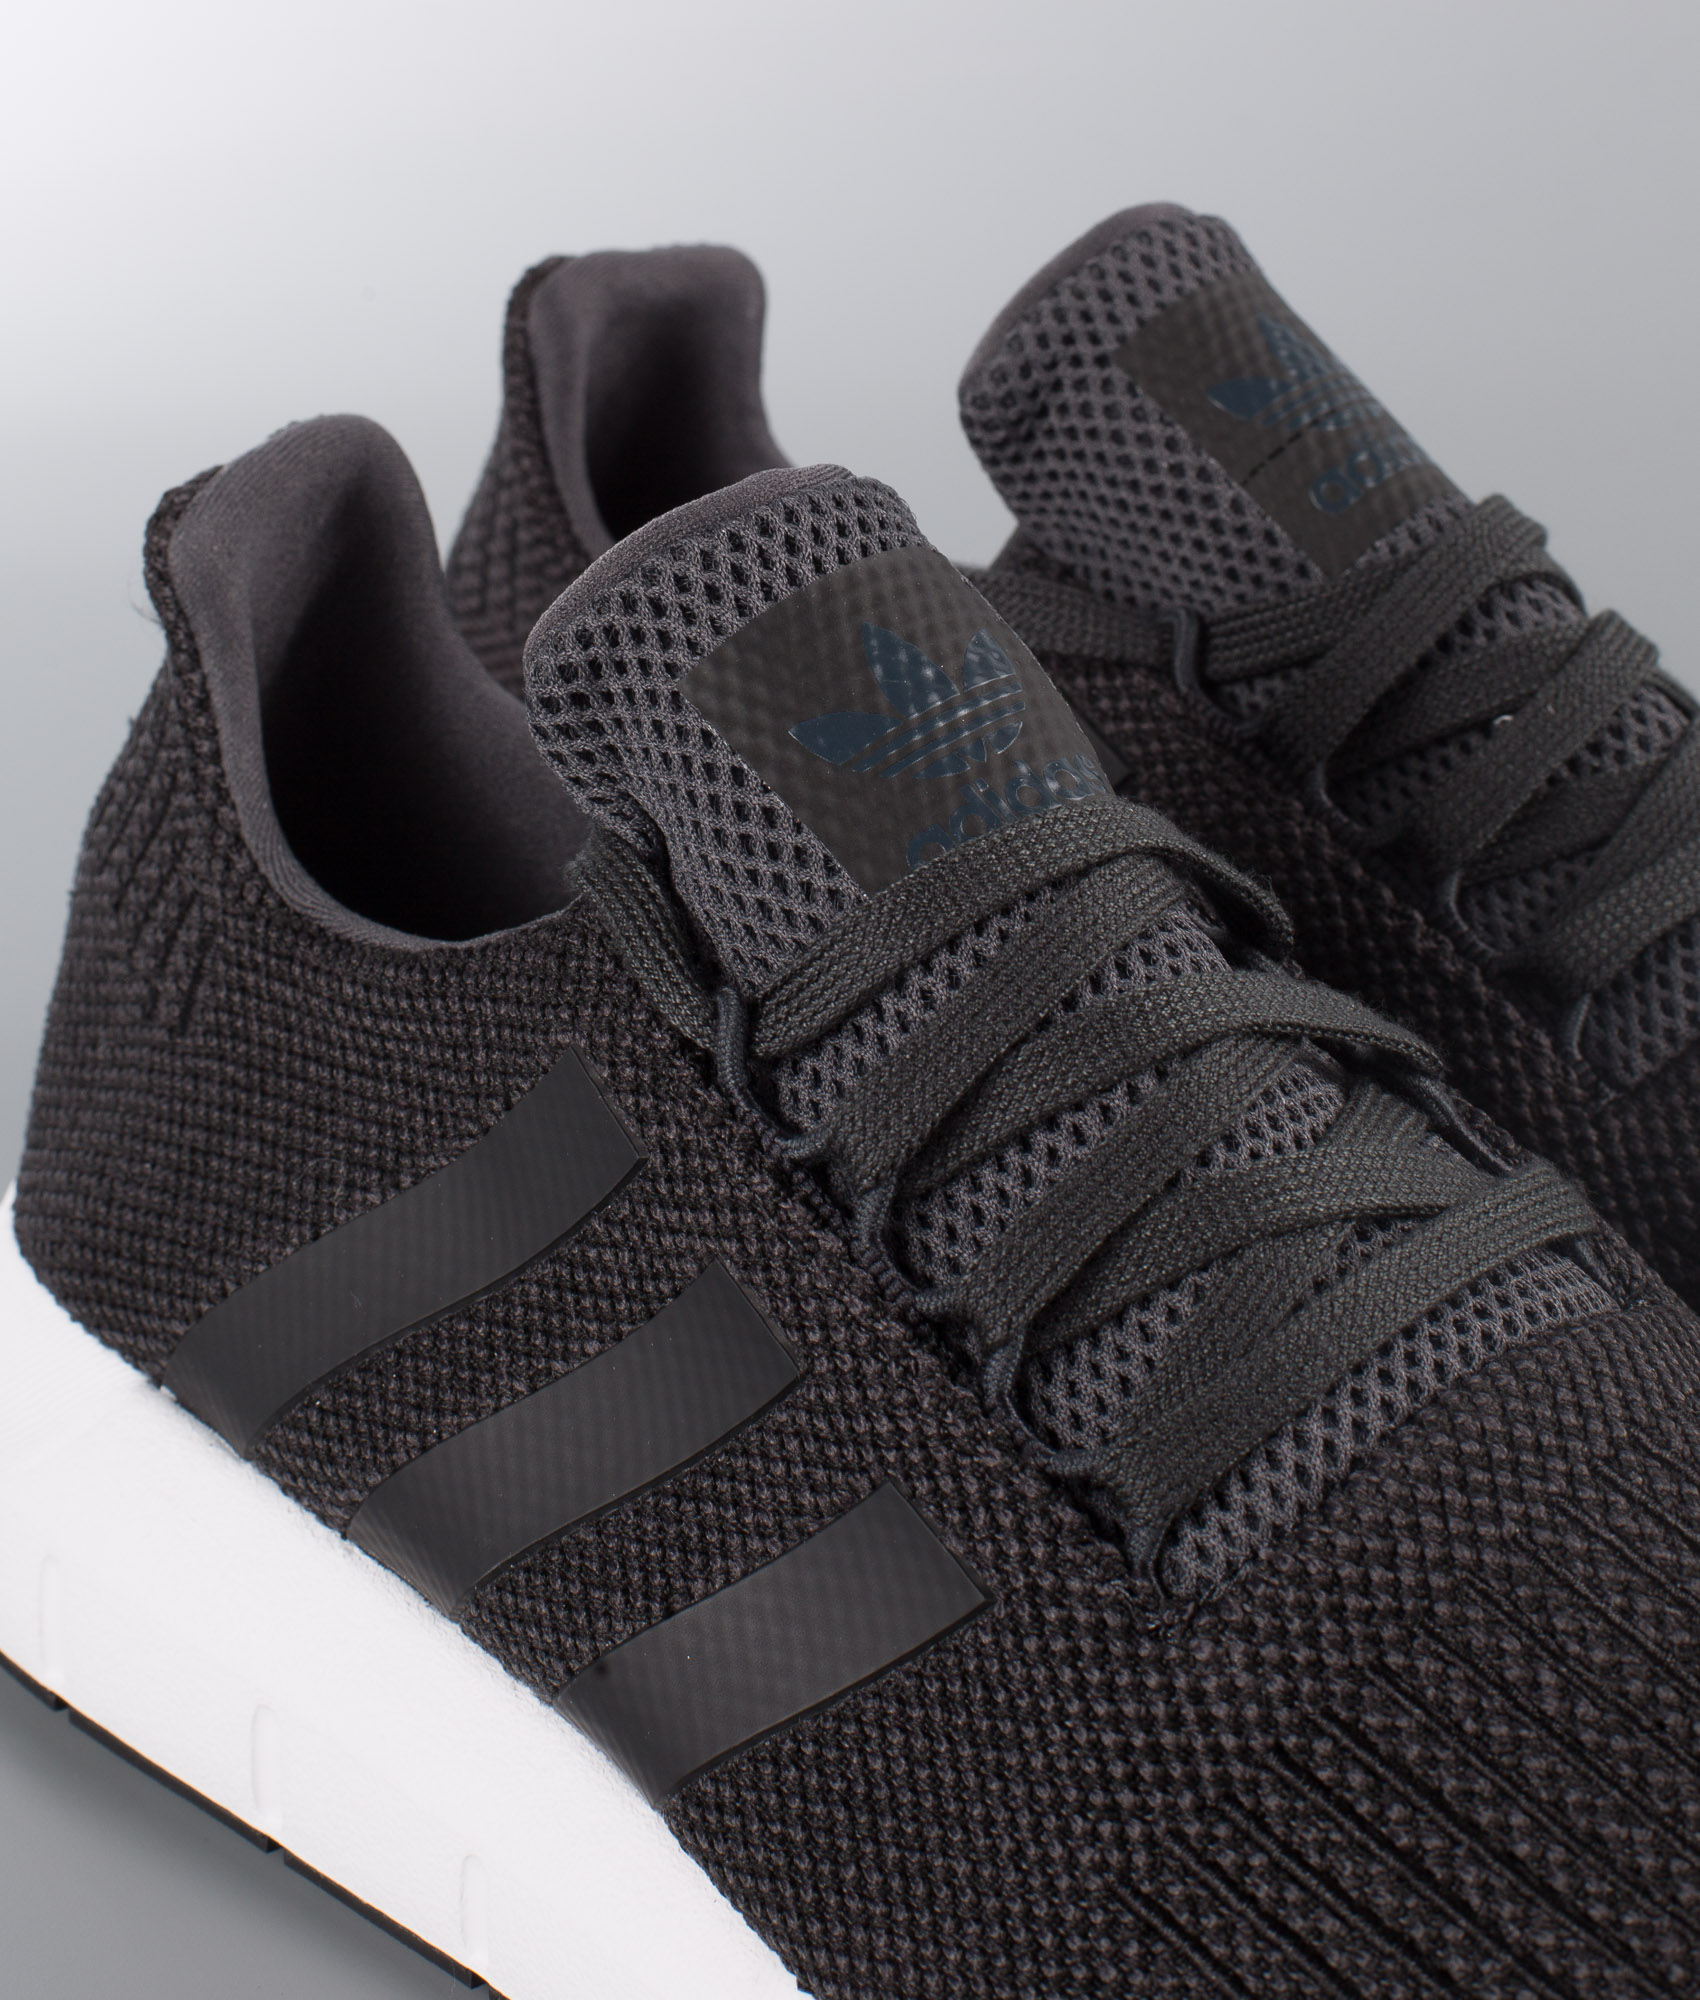 Carboncore Adidas Originals Chaussures Run De Swift Chez Black gYqrg